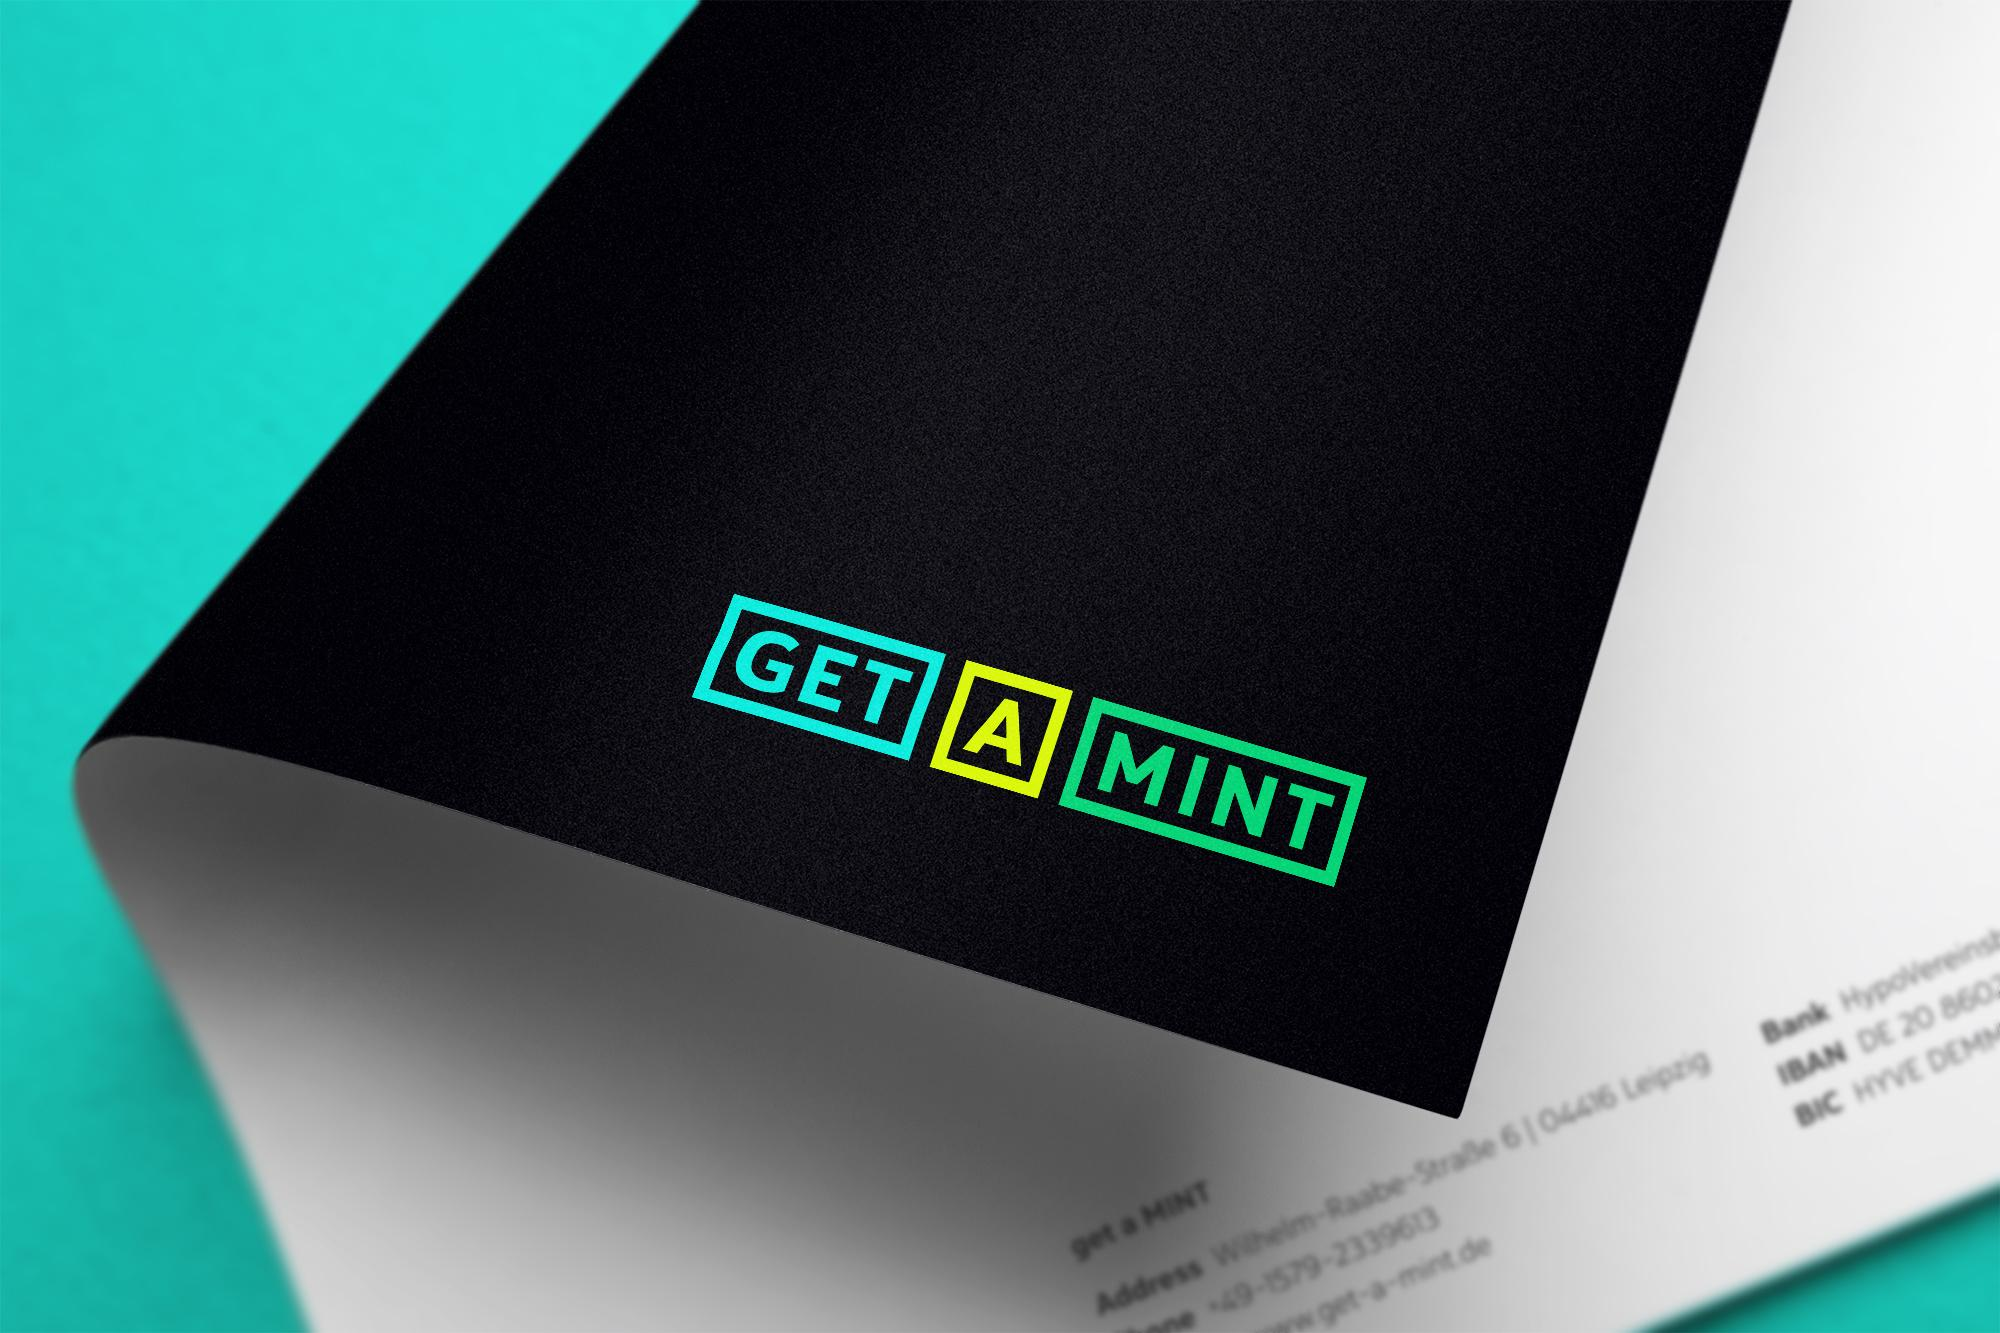 get-a-MINT-Corporate-Design-Geschaeftsausstattung-Briefpapier-Logo-Kontaktdaten.jpg